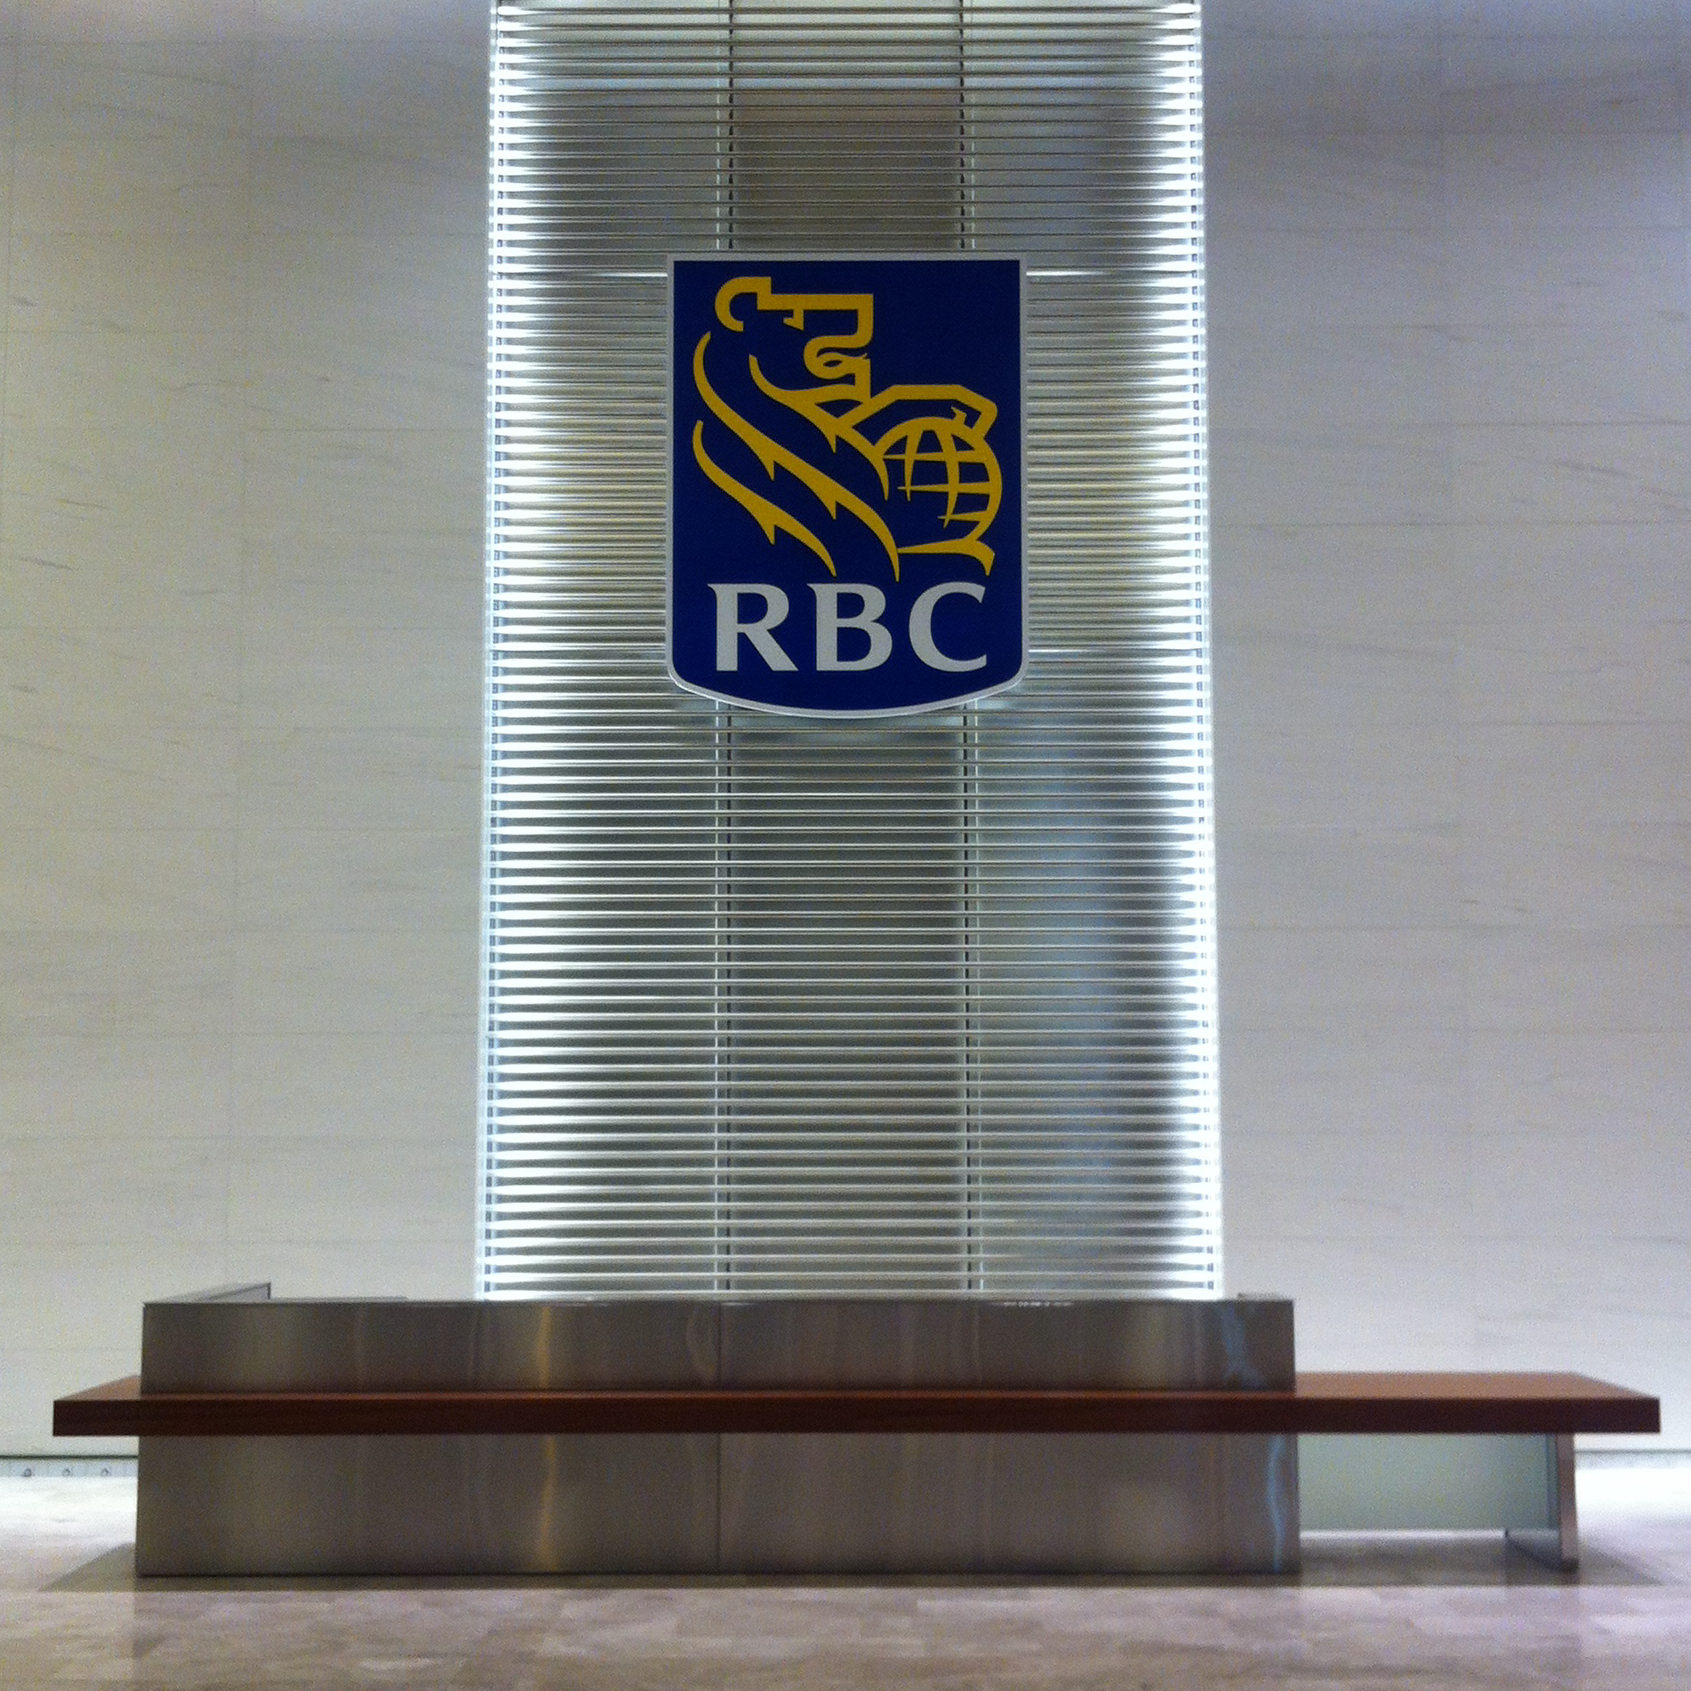 Royal Bank of Canada – Office Properties